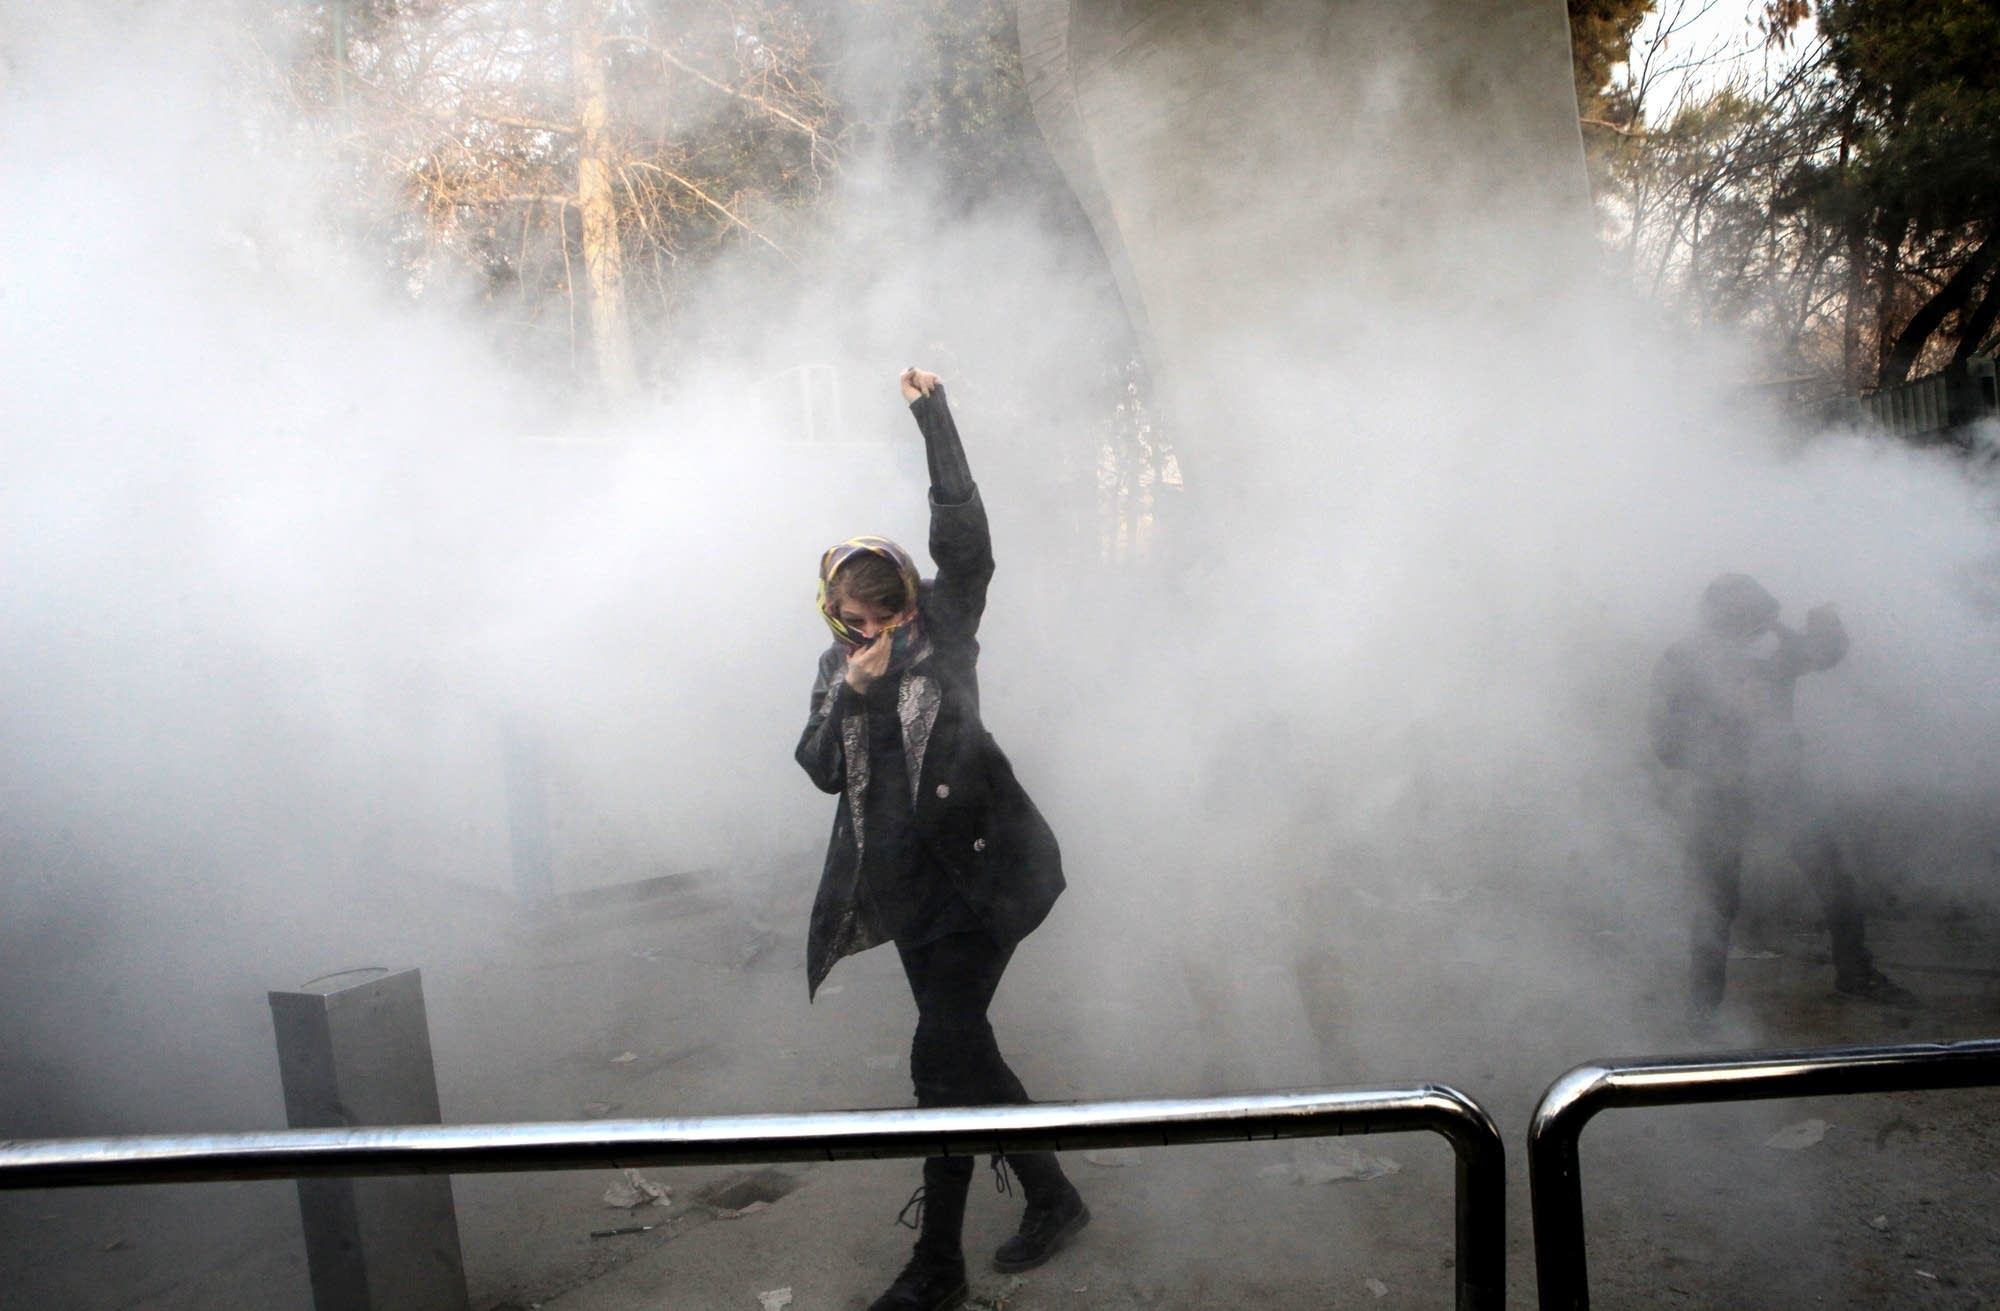 An Iranian woman raises her fist amid the smoke of tear gas.